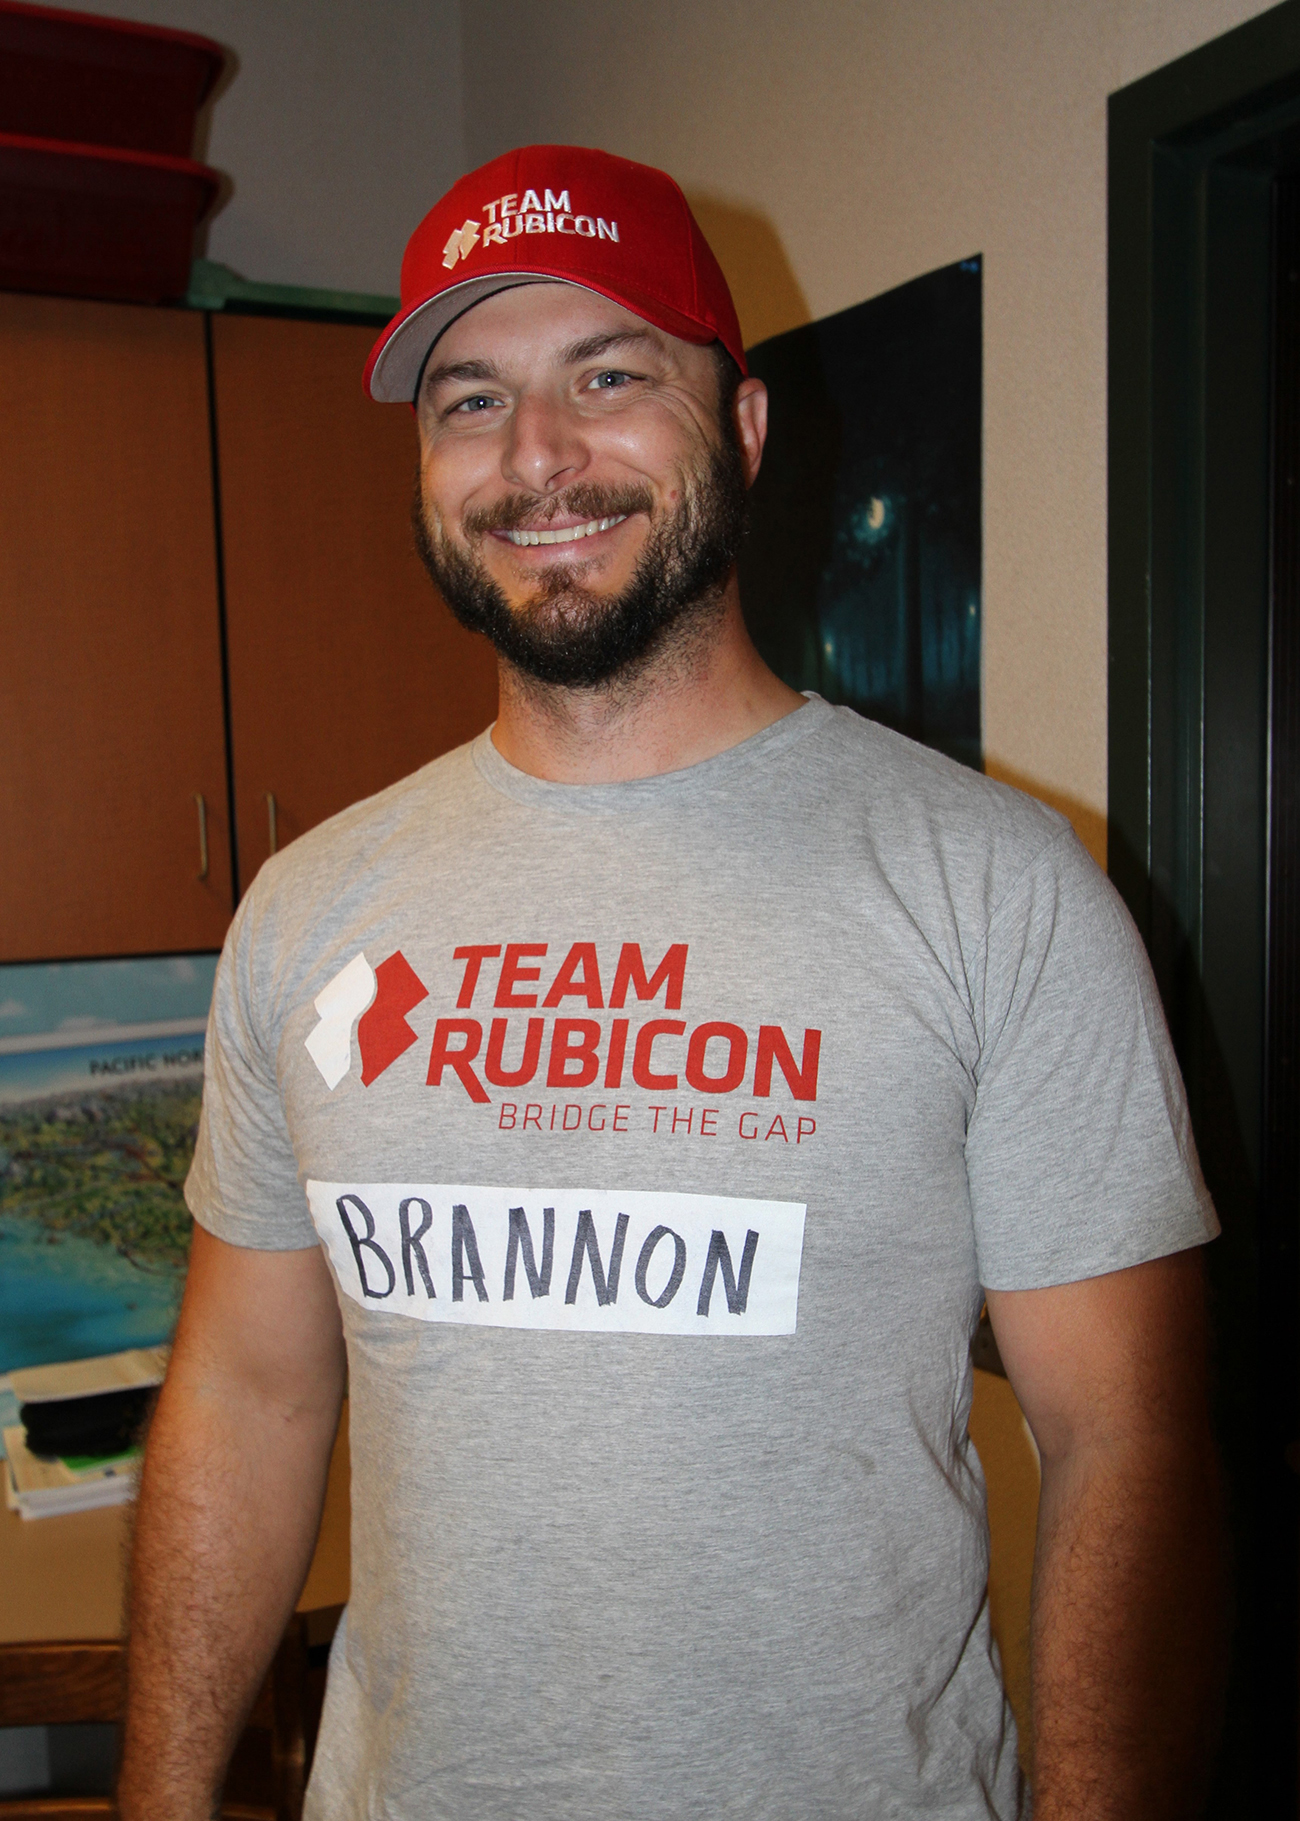 Photograph shows a man wearing a Team Rubicon hat, and Team Rubicon shirt.